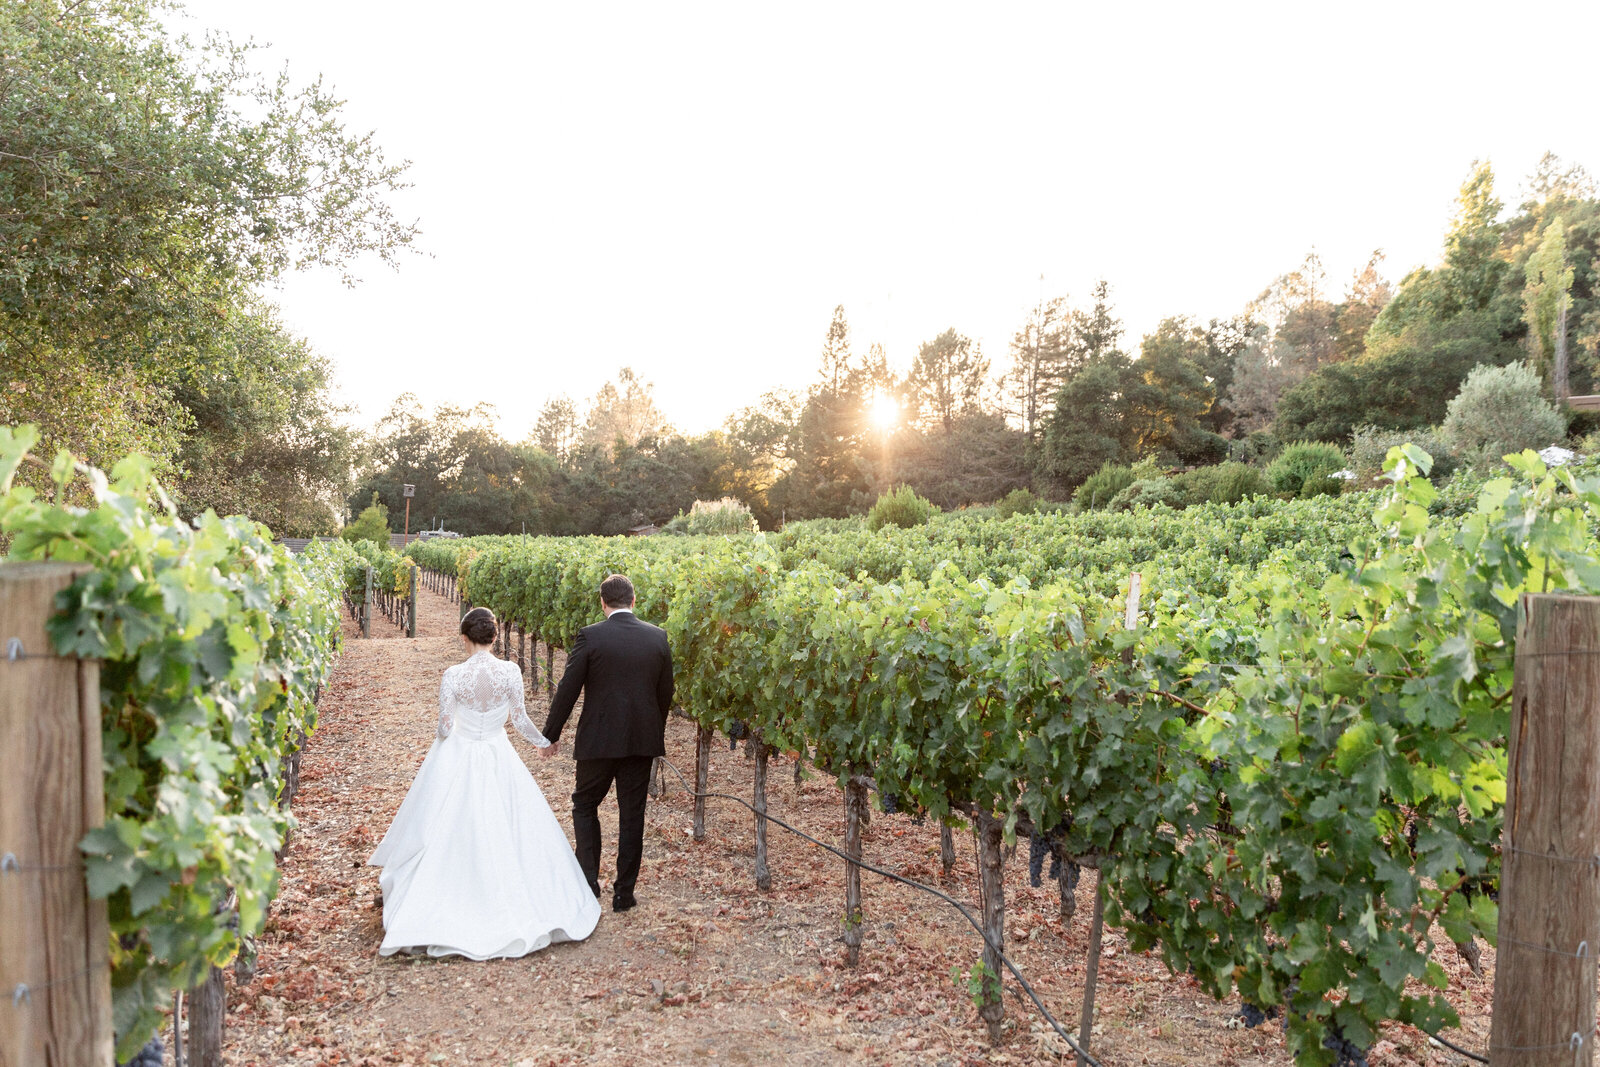 larissa-cleveland-elope-eleopement-intimate-wedding-photographer-san-francisco-napa-carmel-040